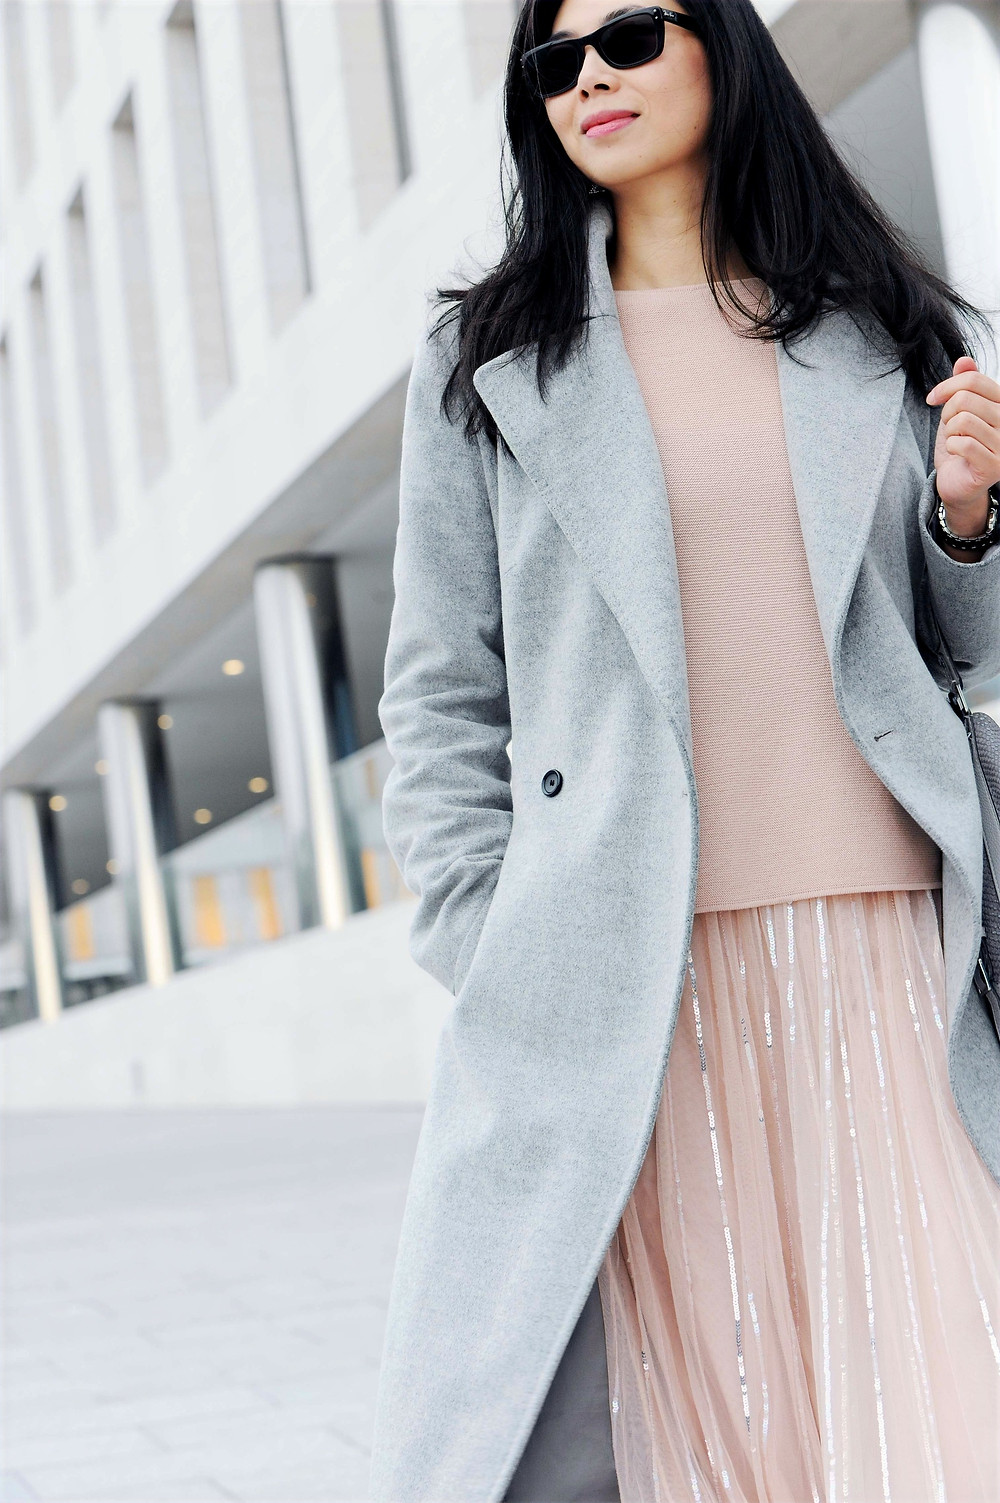 Business casual woman outfit with Needle & Thread rose quartz tulle skirt and light grey Karen Millen wool coat.